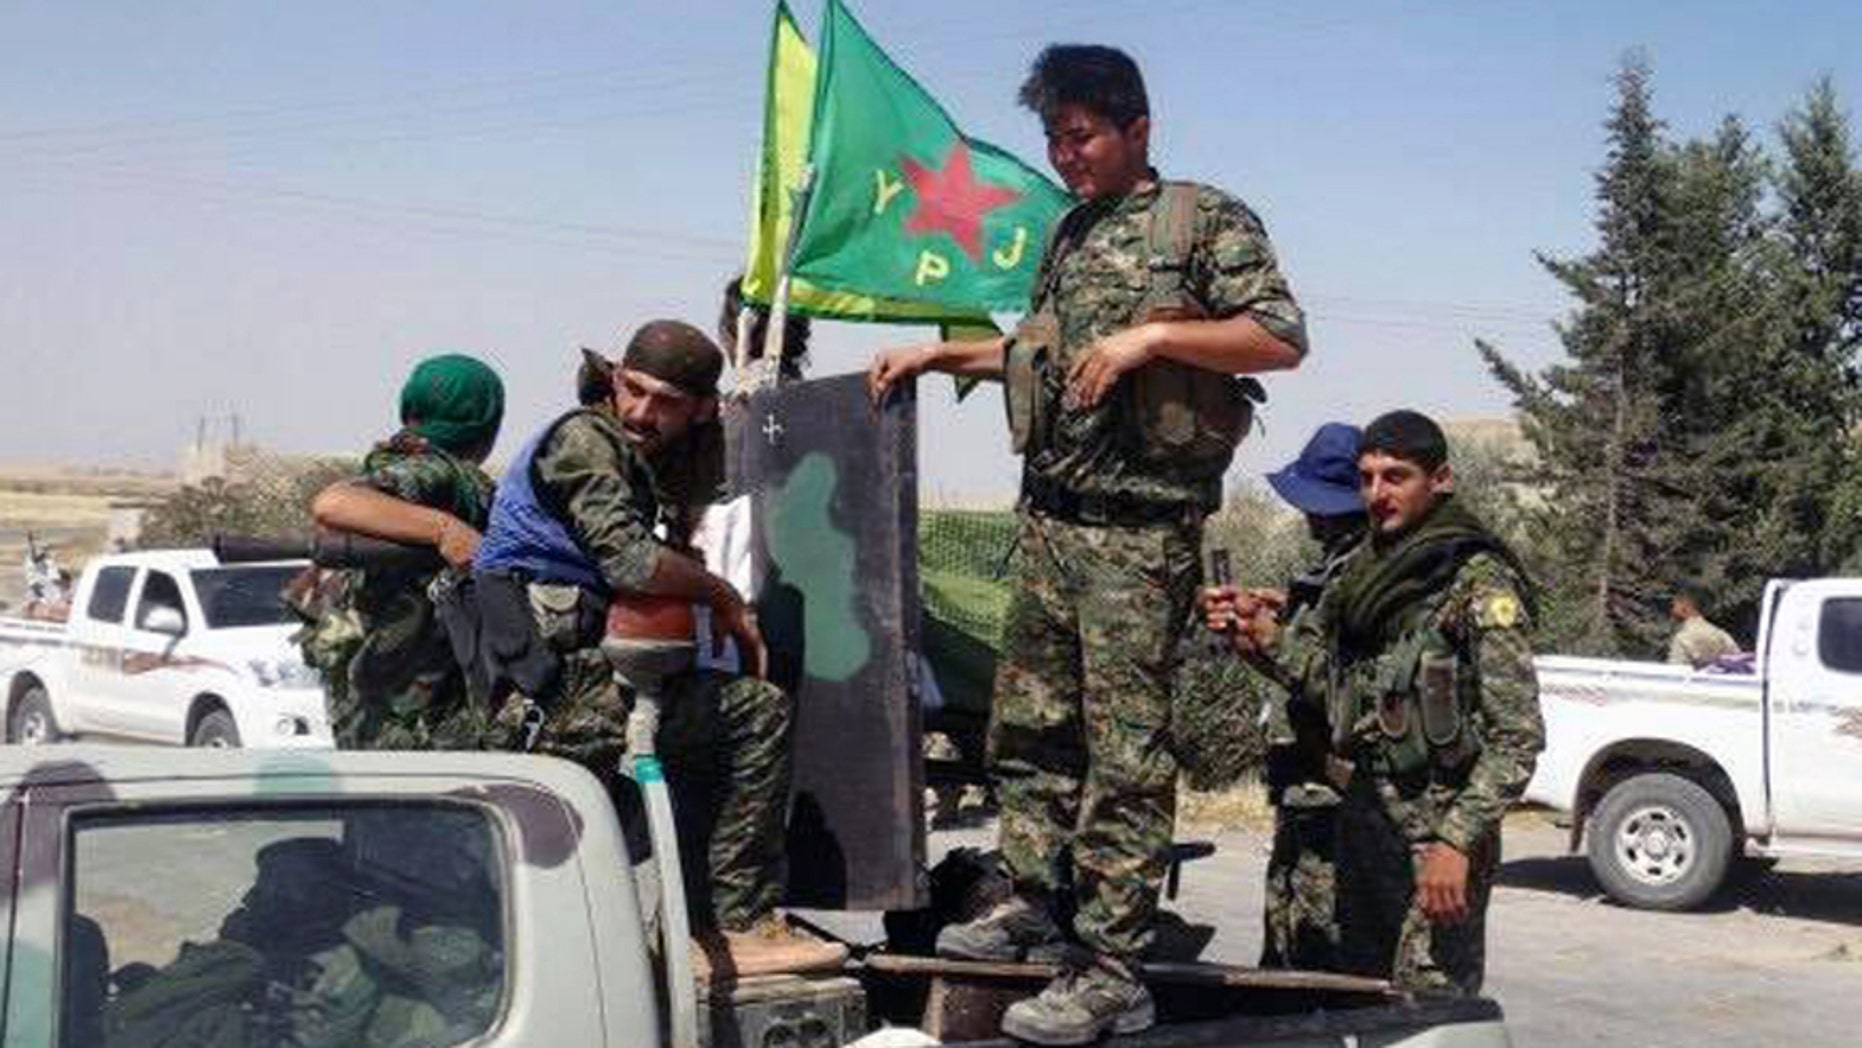 In this file photo released on Tuesday, June 23, 2015, provided by the Kurdish fighters of the People's Protection Units (YPG), which has been authenticated based on its contents and other AP reporting, Kurdish fighters of the YPG, sit on their pickup in the town of Ein Eissa, north of Raqqa city, Syria.